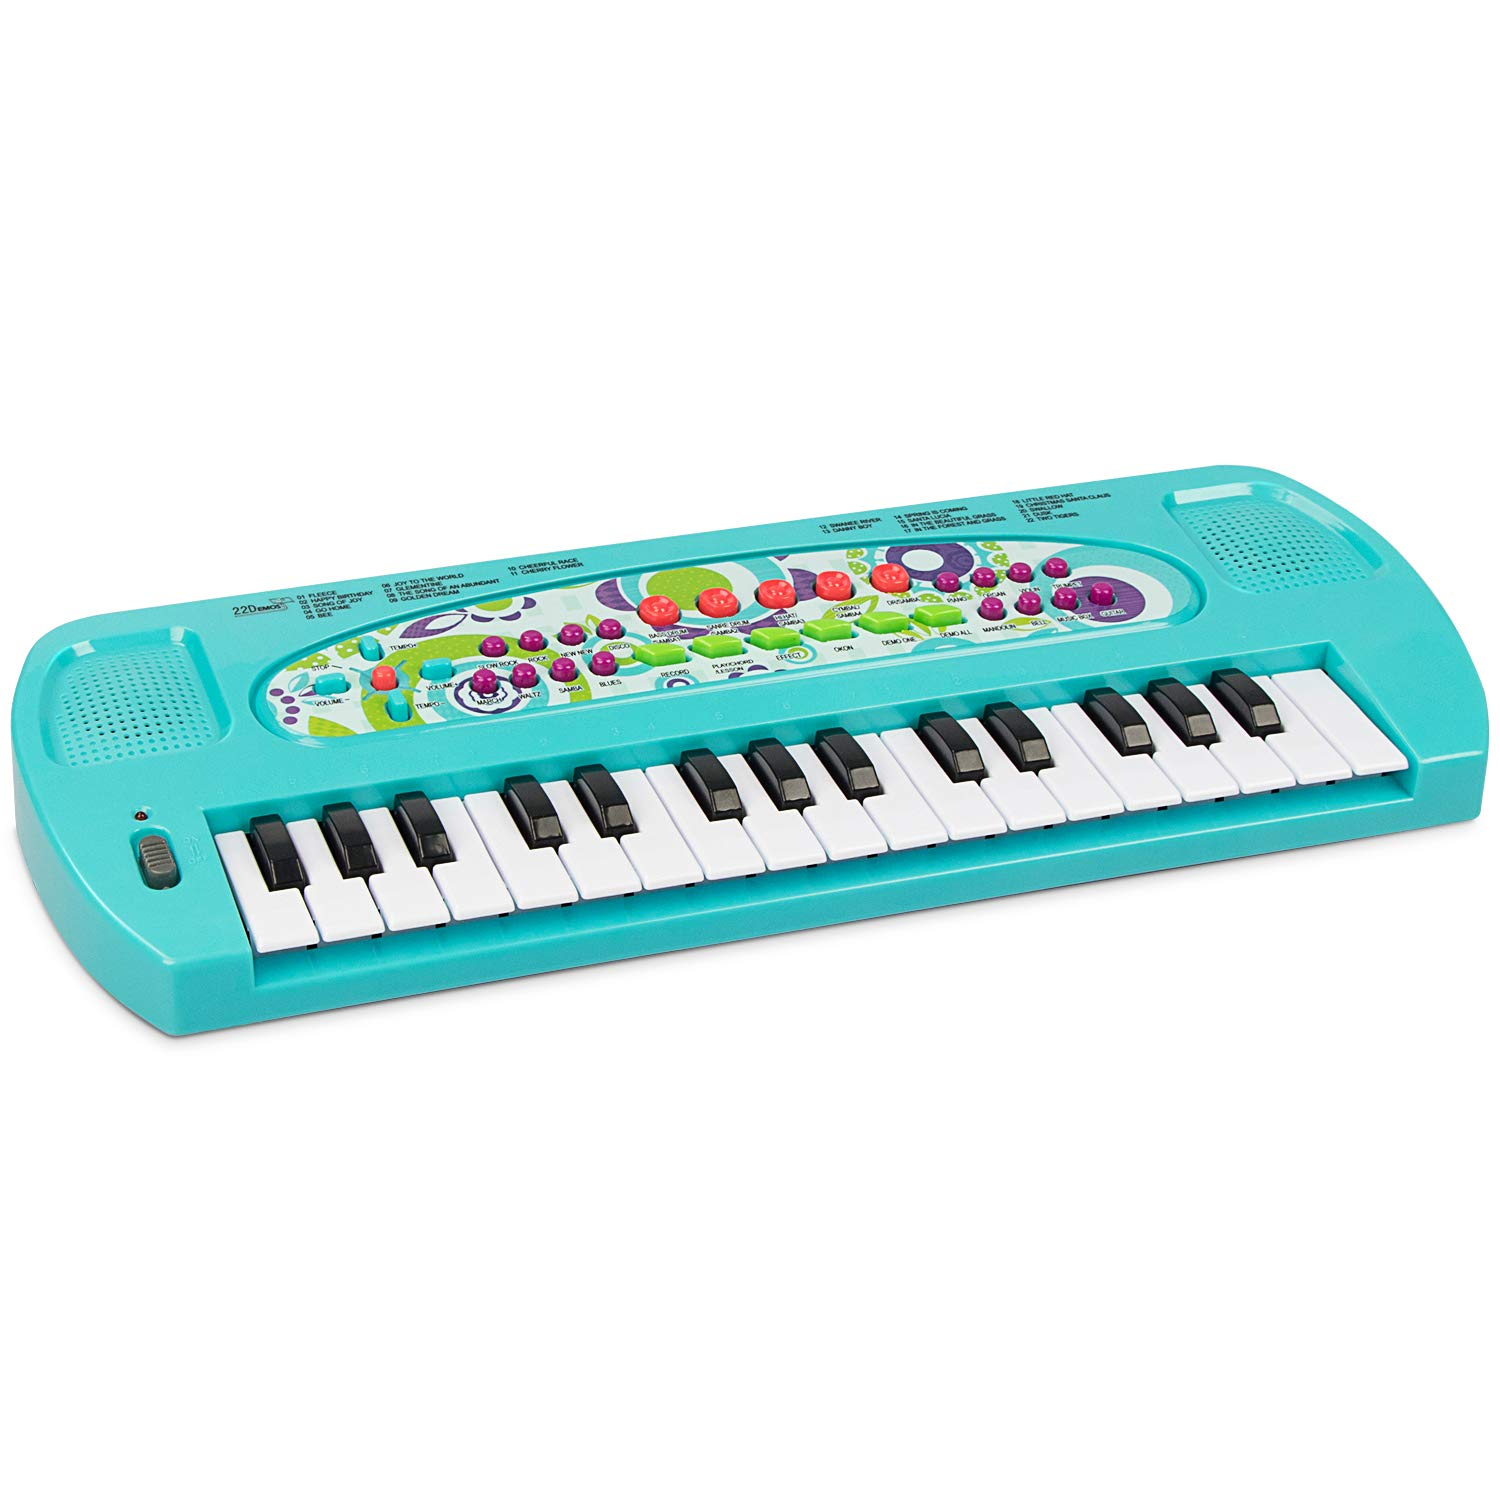 aPerfectLife Baby Piano Keyboard, 32 Keys Multifunction Electronic Kids Keyboard Piano Musical Instrument Toys for 3 Year Old Girls Boys (Blue)